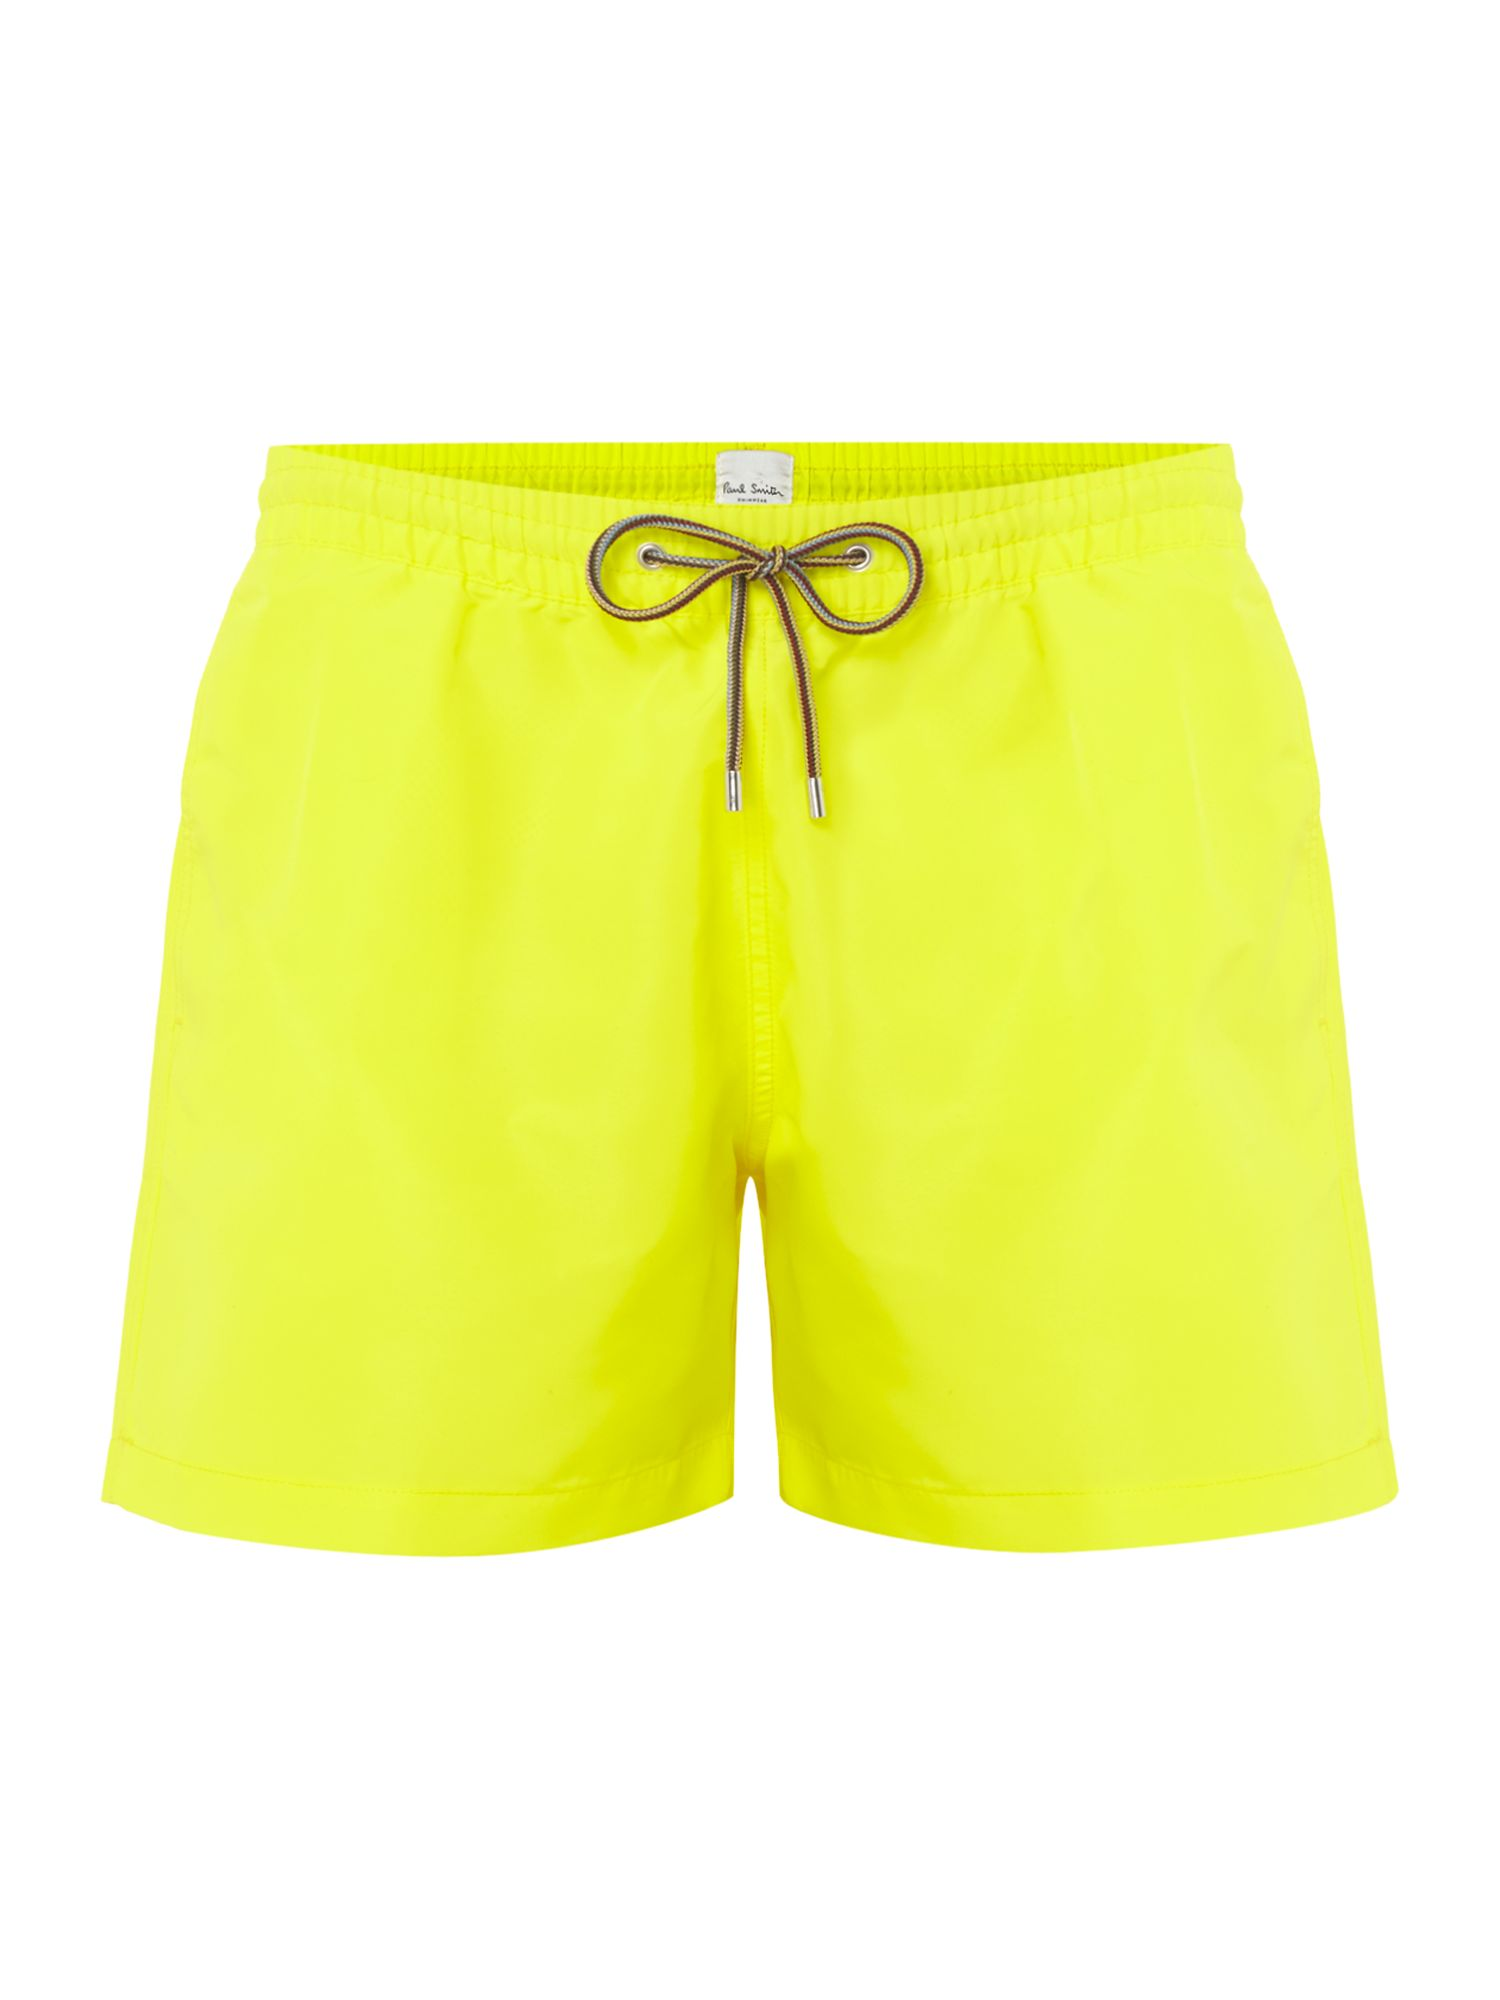 Men's Paul Smith Solid Colour Classic Swim Shorts, Yellow